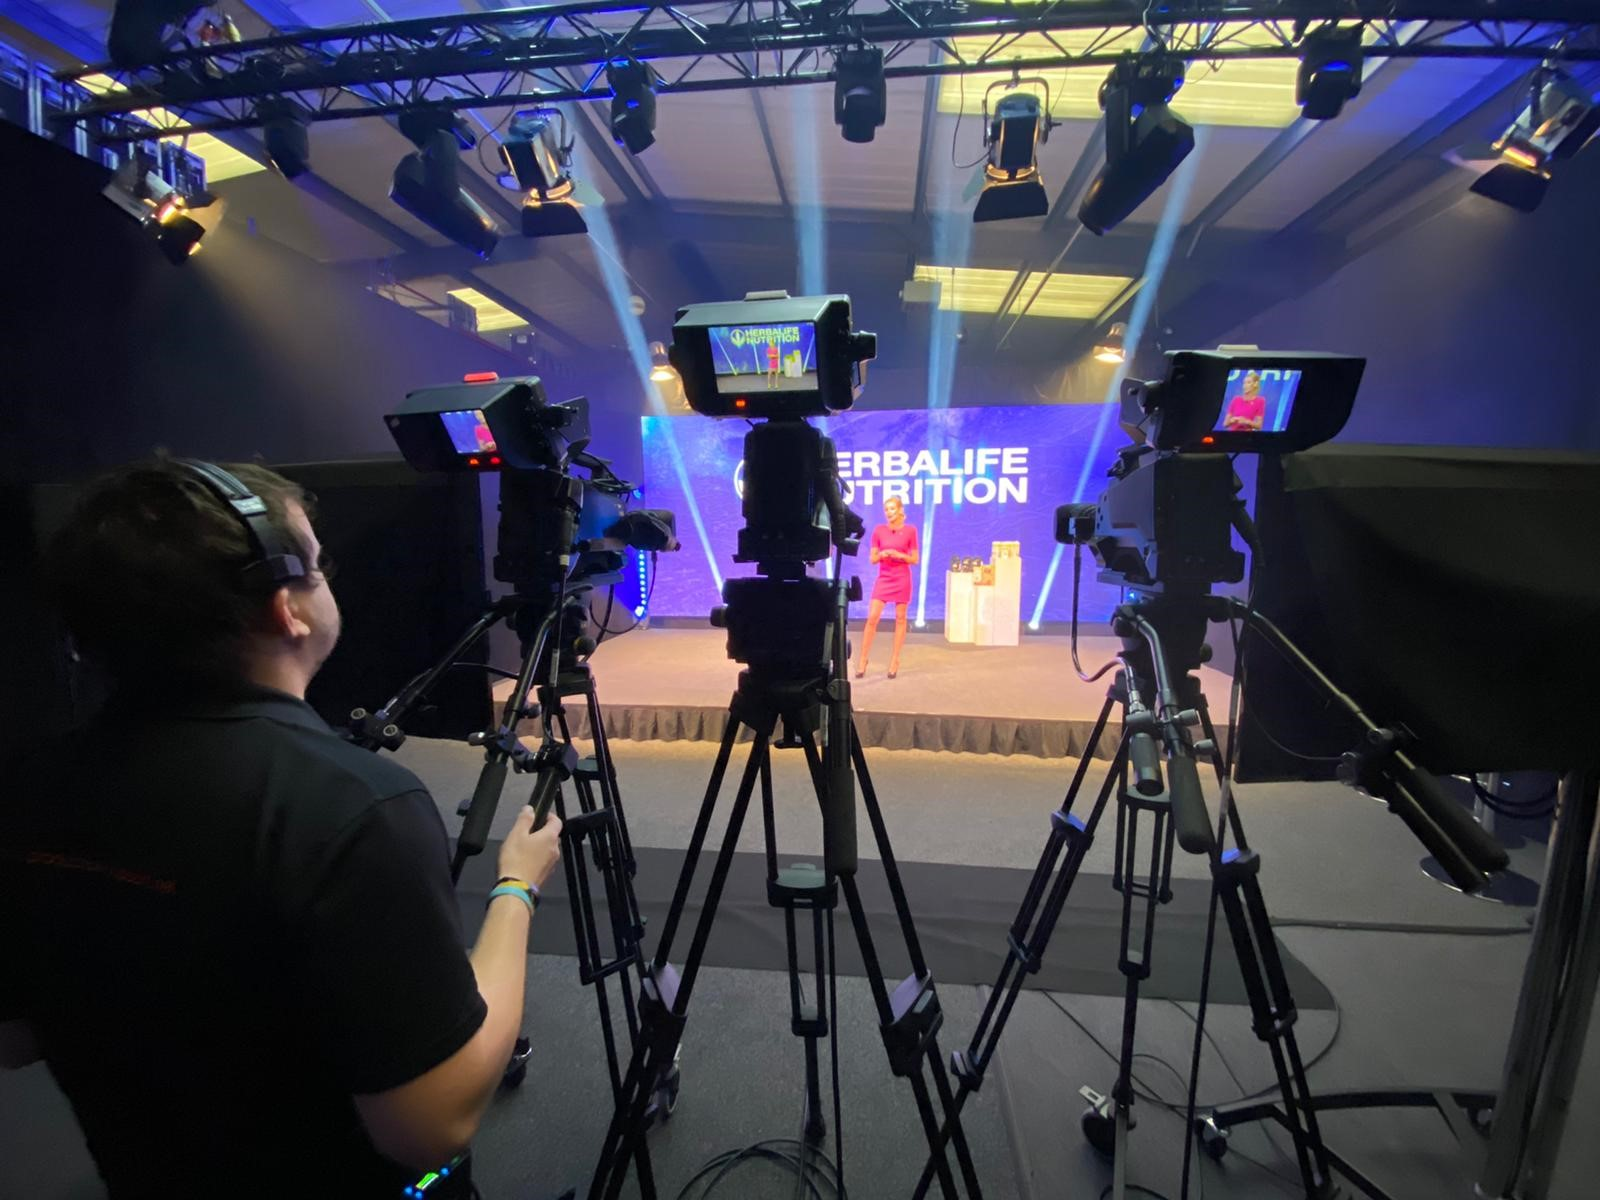 Stage lighting by production support services